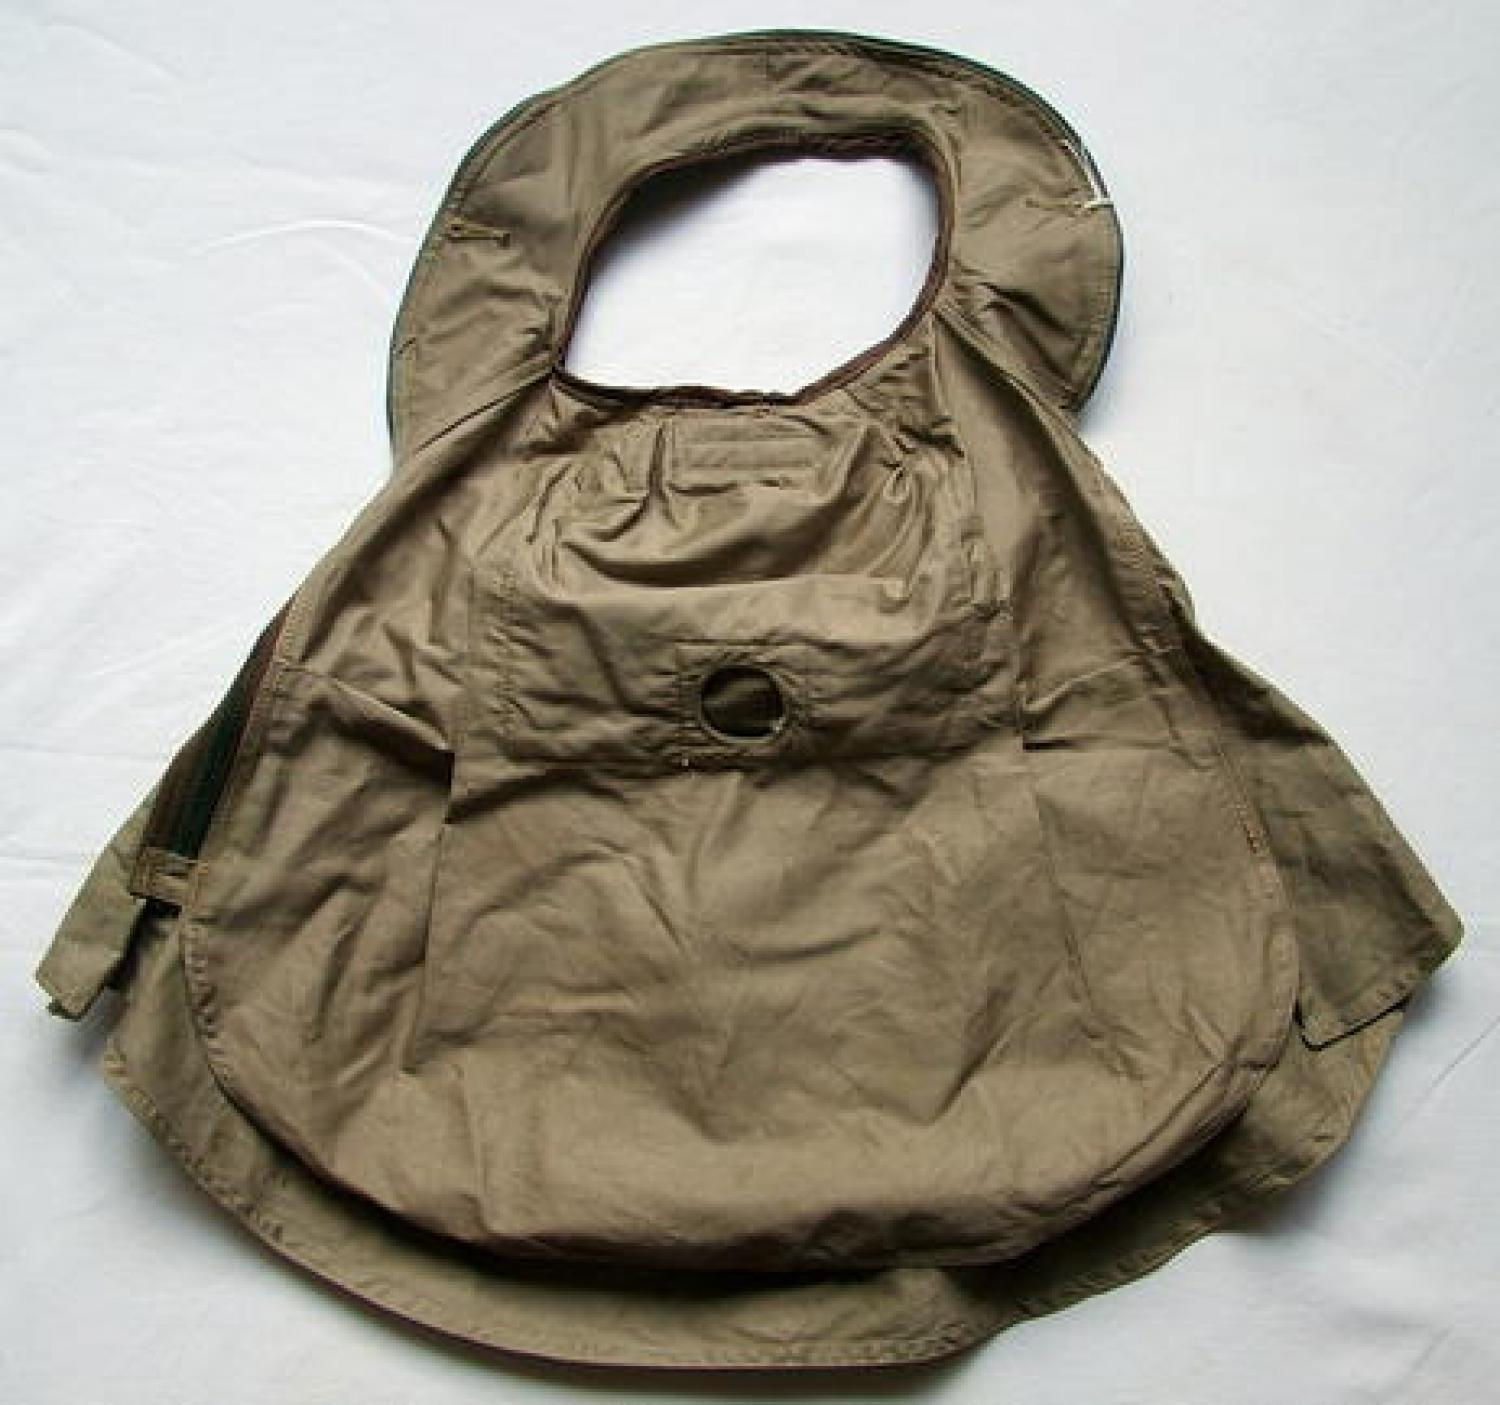 R.A.F. Airgunner's Facemask